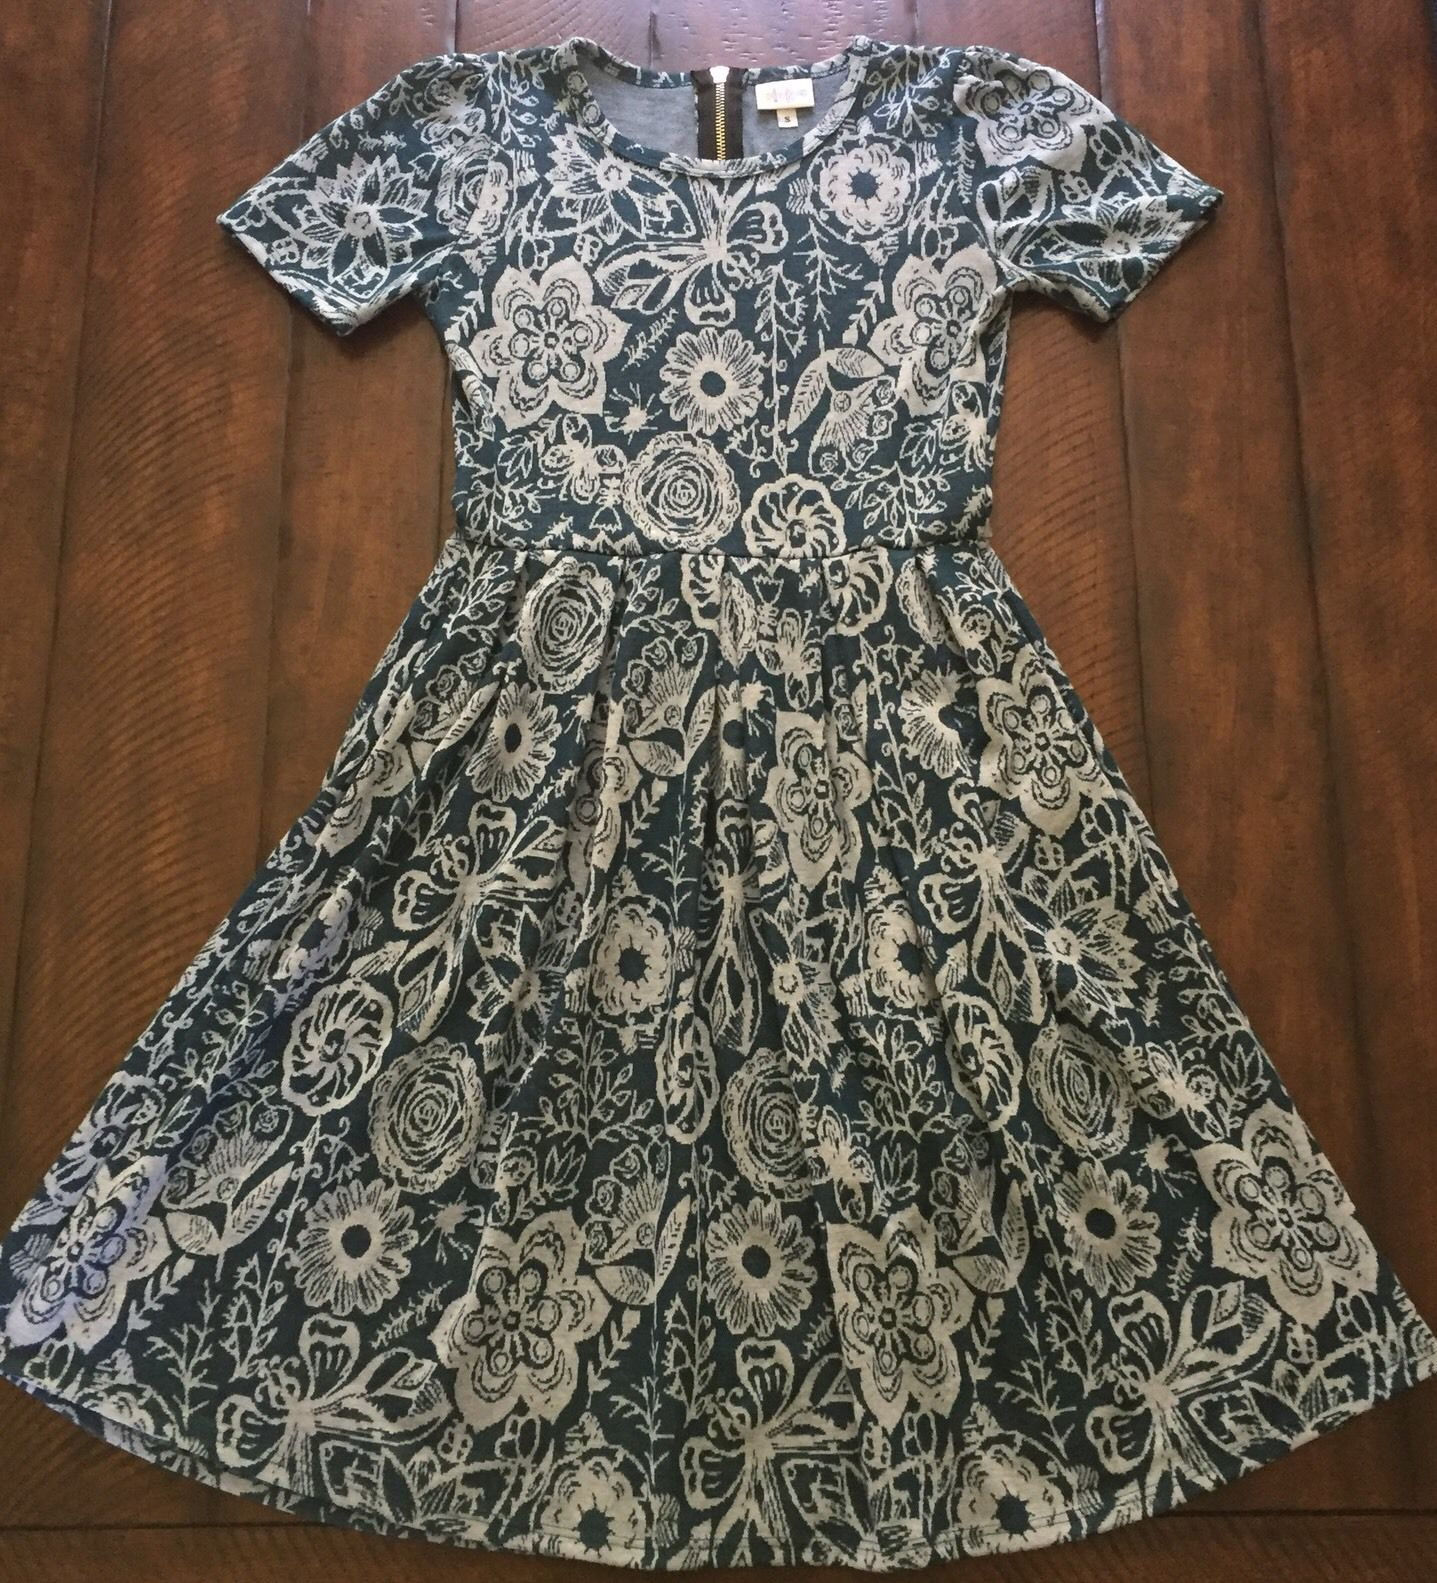 $  45.00 (32 Bids)End Date: May-15 08:46Bid now  |  Add to watch listBuy this on eBay (Category:Women's Clothing)...